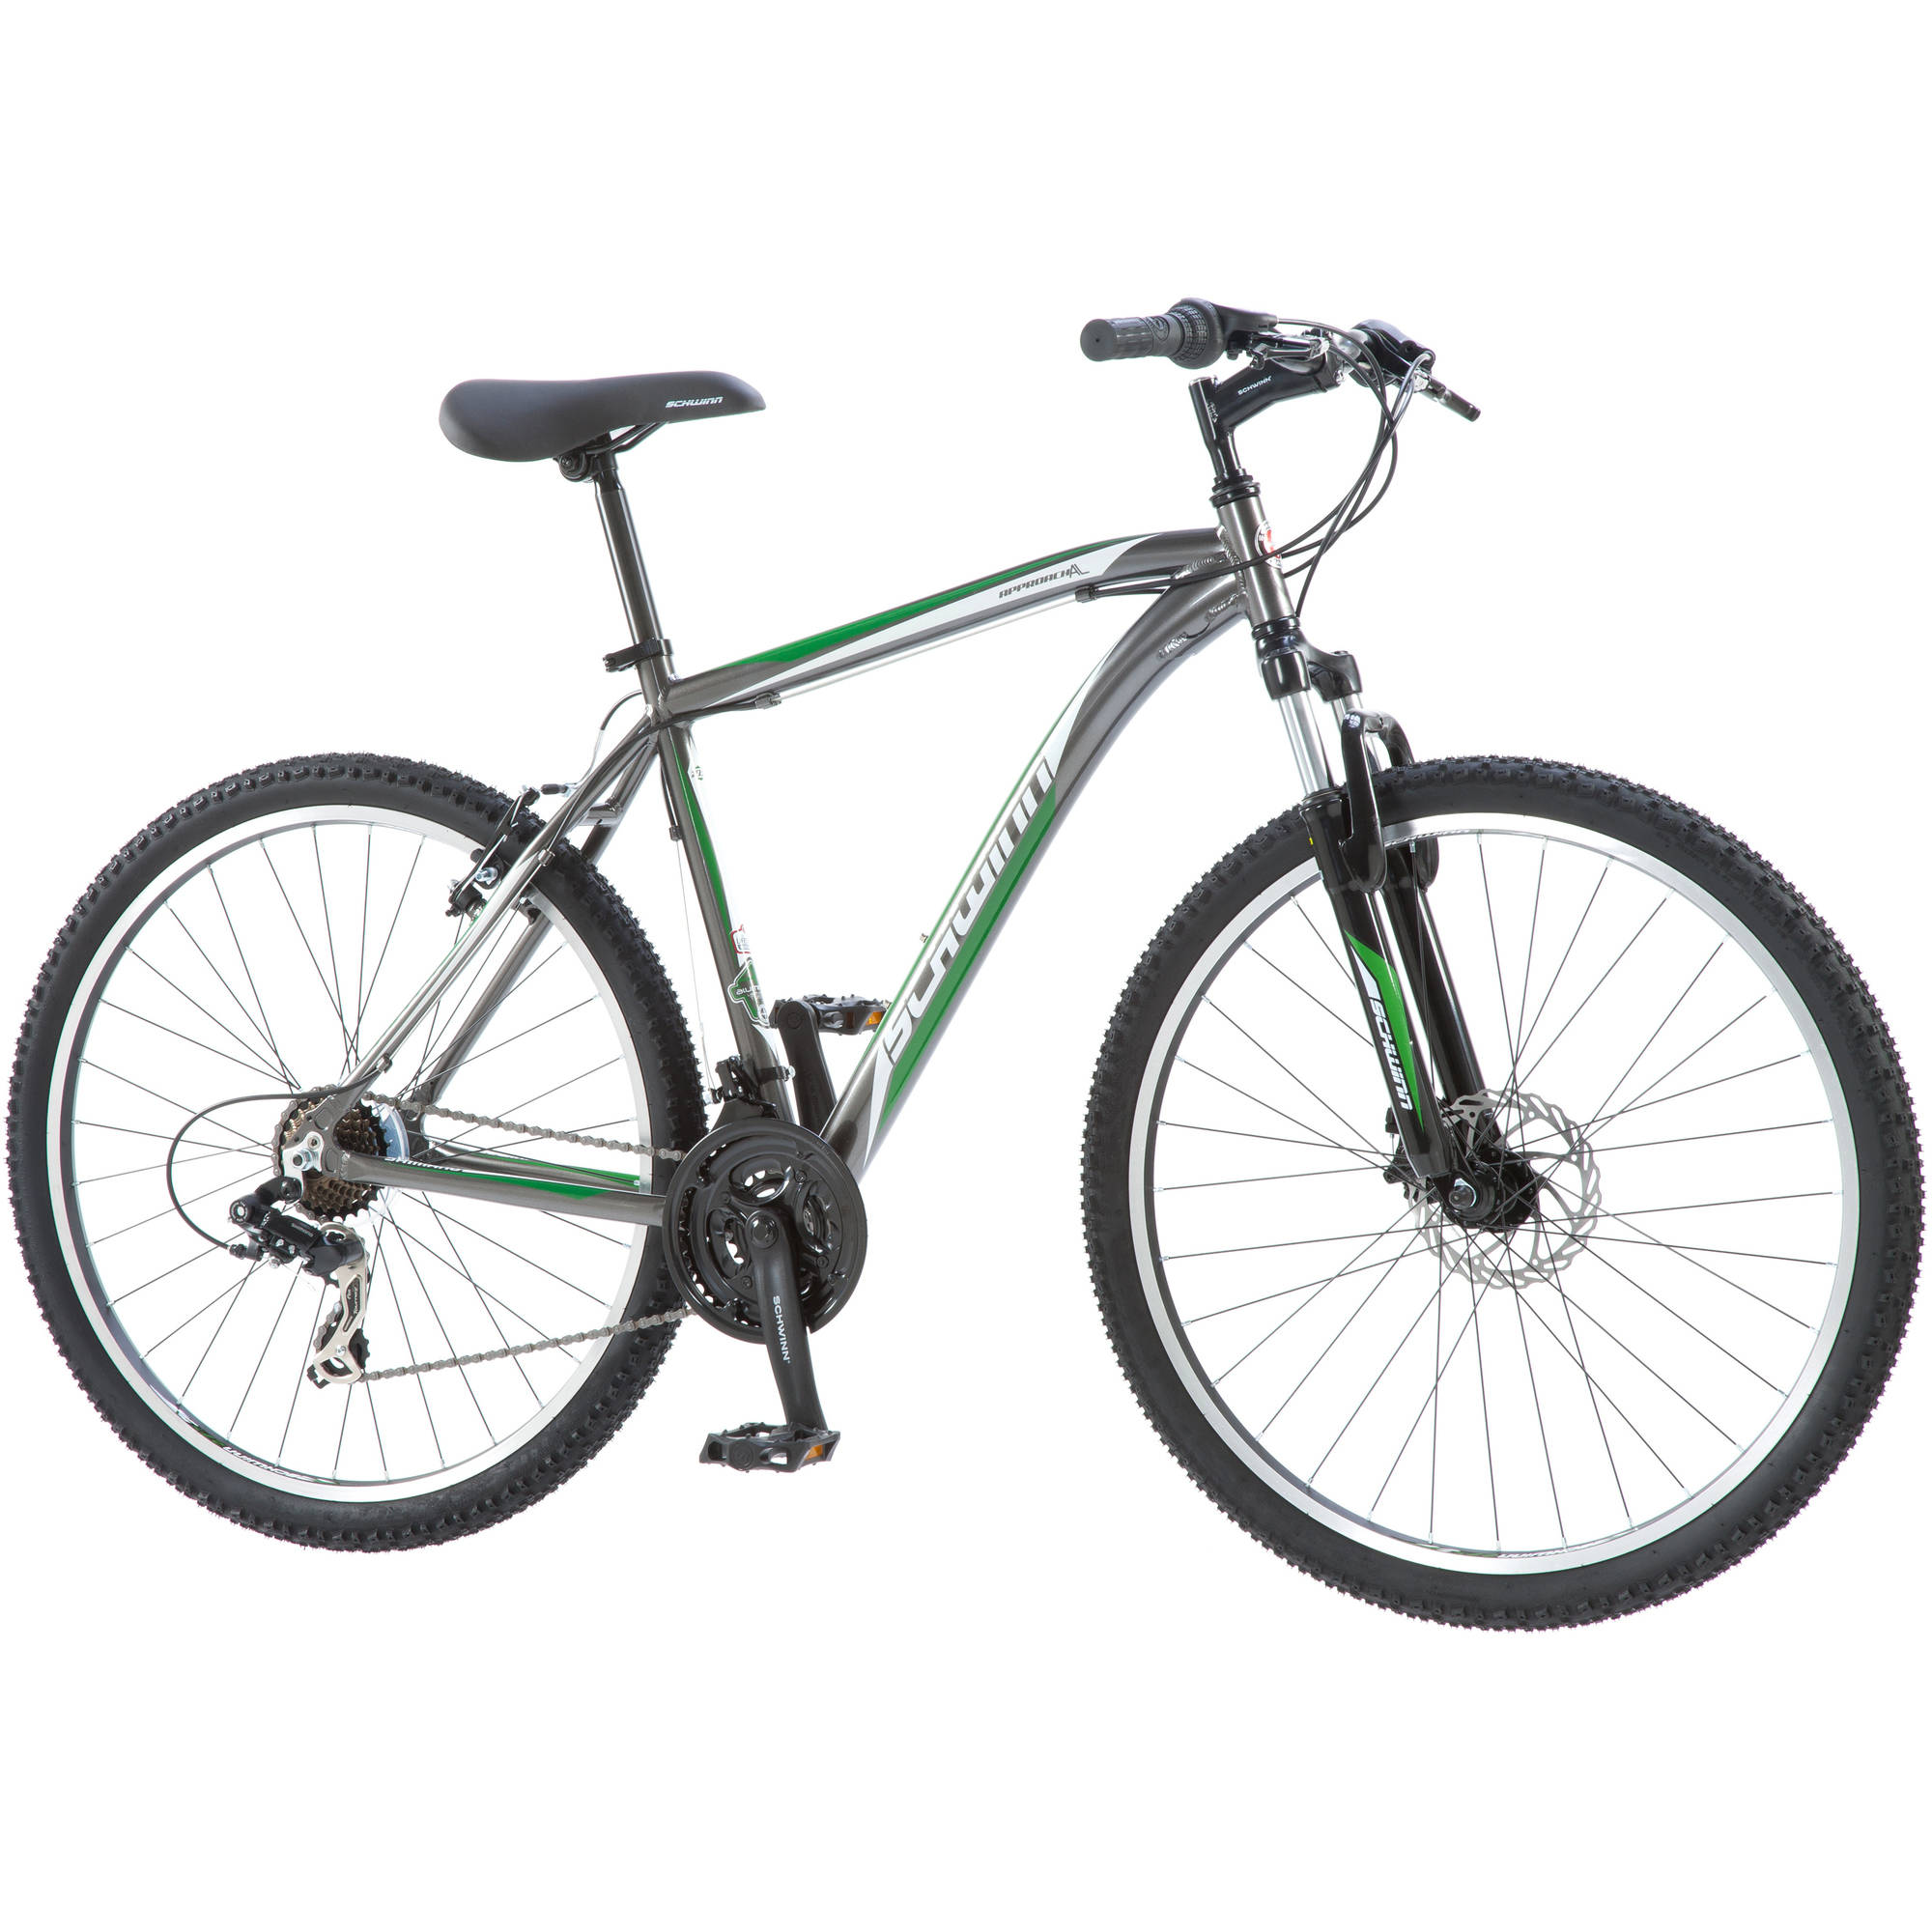 "27.5"" Schwinn Men's Approach Mountain Bike, Grey/Green"